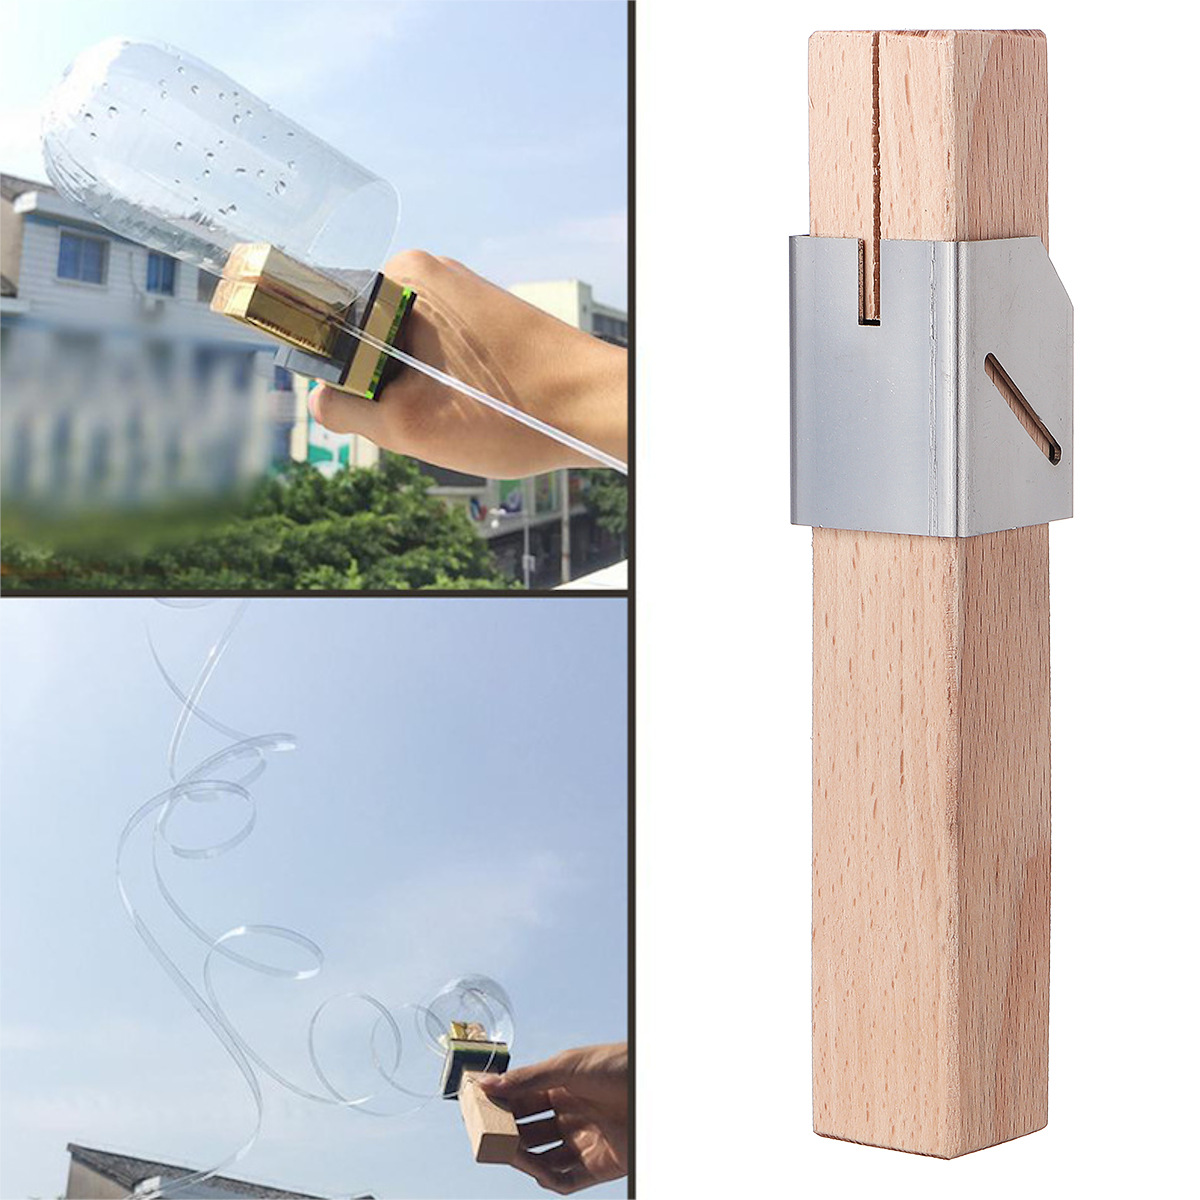 Plastic Bottle Cutter Smart Portable Outdoor Household Bottles Rope Tools DIY Craft Bottle Rope Cutter Construction Tools